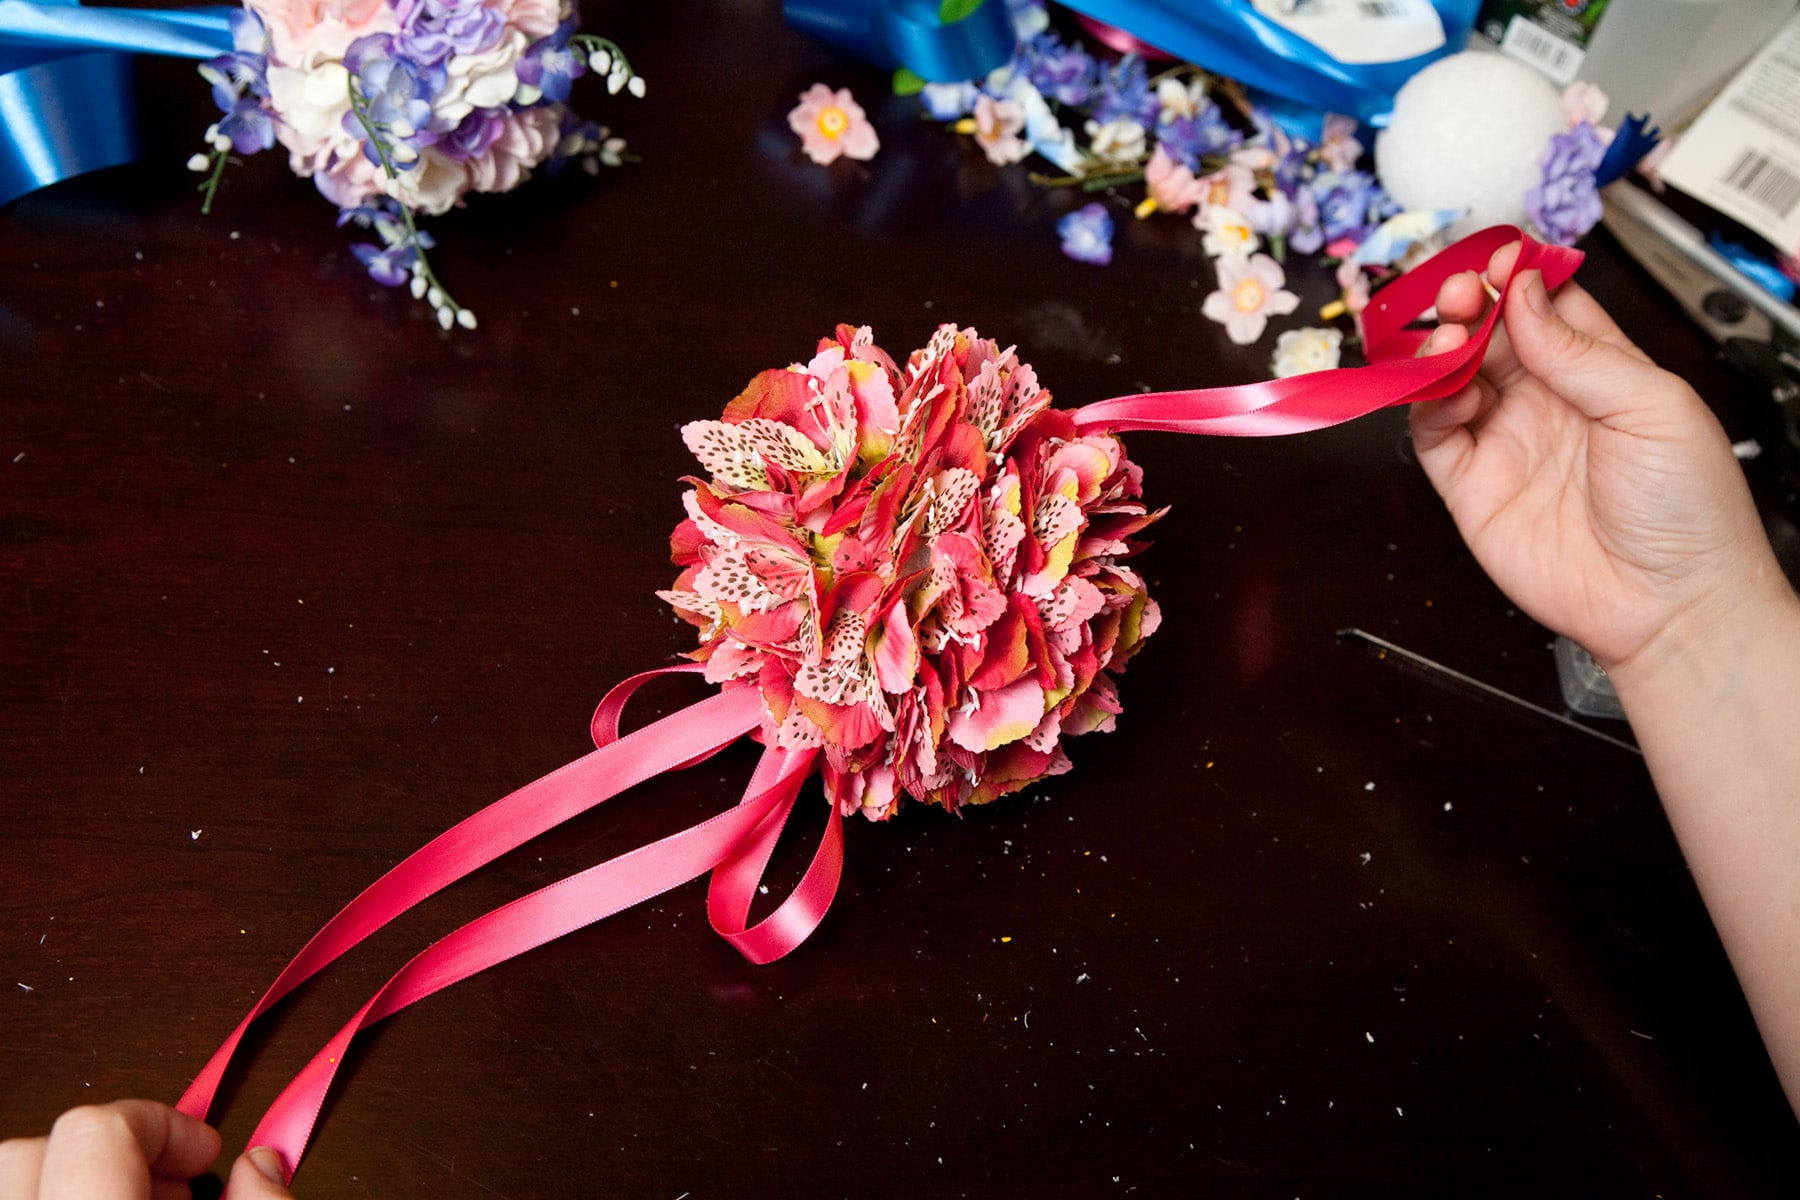 Two hands hold a pomander made of pink silk flowers and hot pink ribbon.